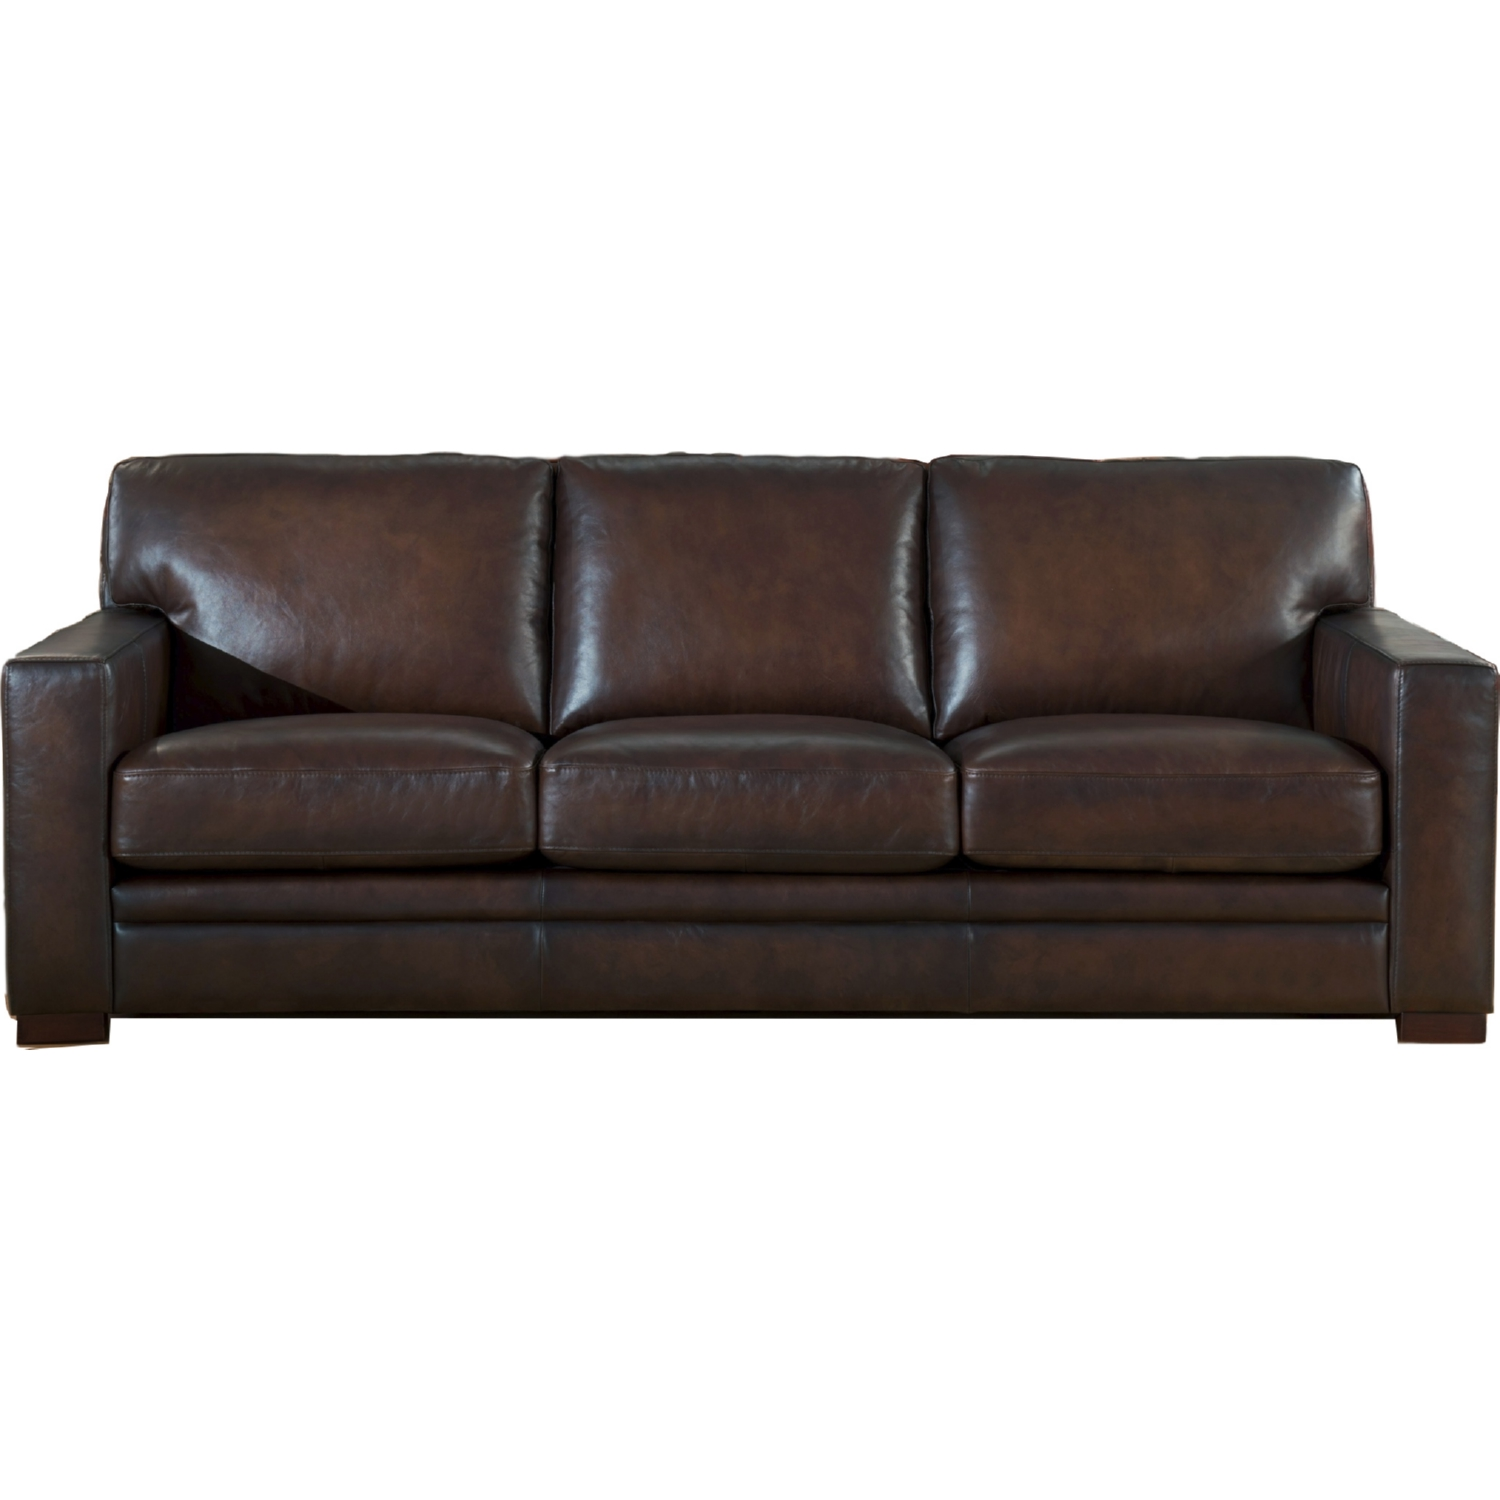 AMAX Leather Chatsworth 100% Leather Sofa In Brown